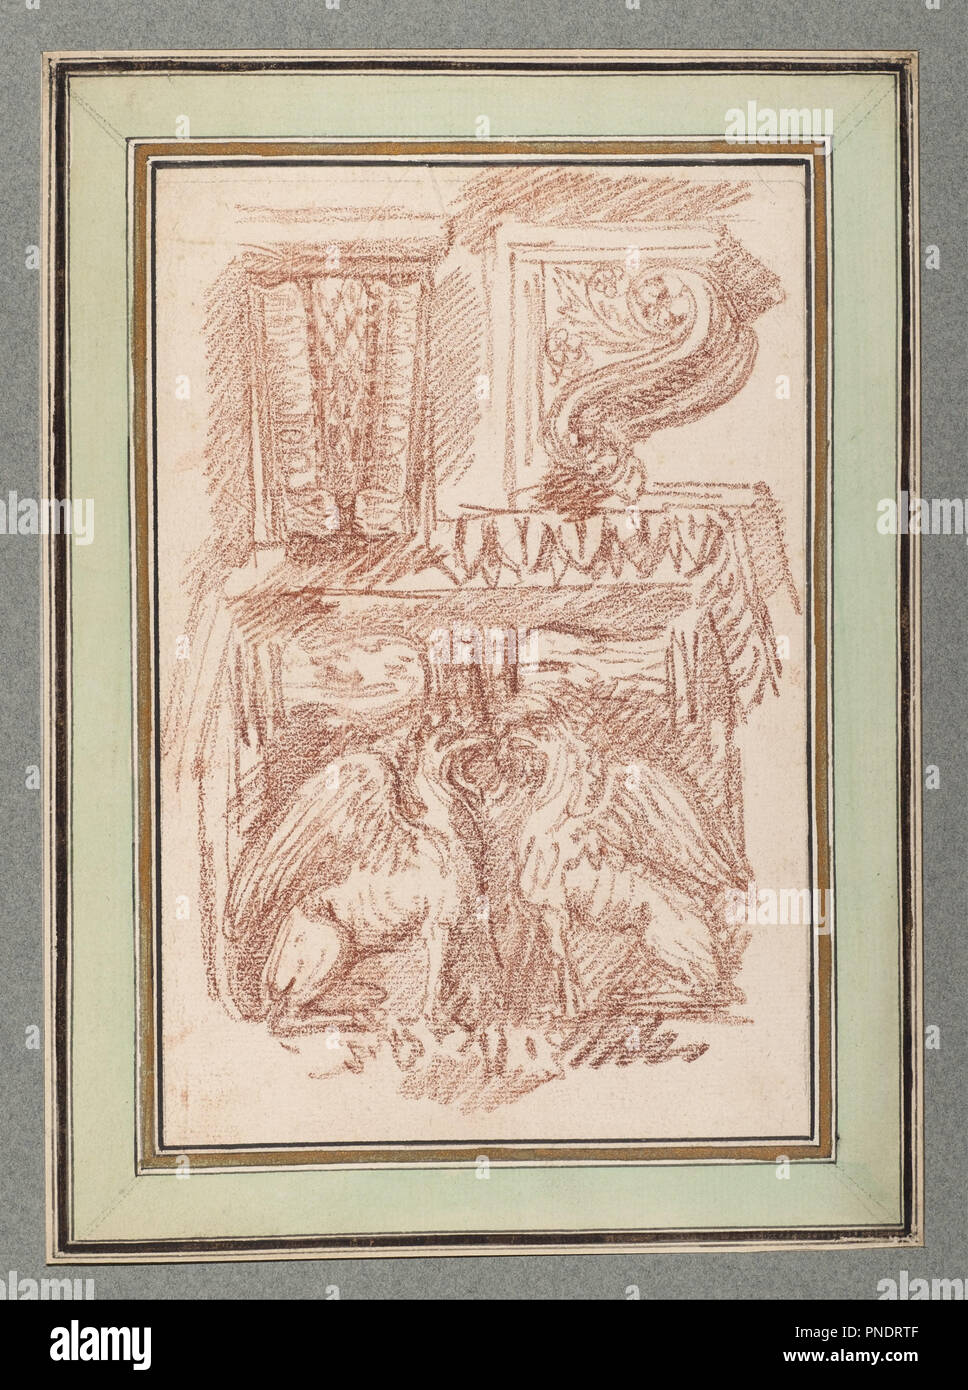 Drawings after Ornament and Architecture. Date/Period: After 1759. Book. Red chalk on off-white laid paper. Author: Jean-Robert Ango. - Stock Image